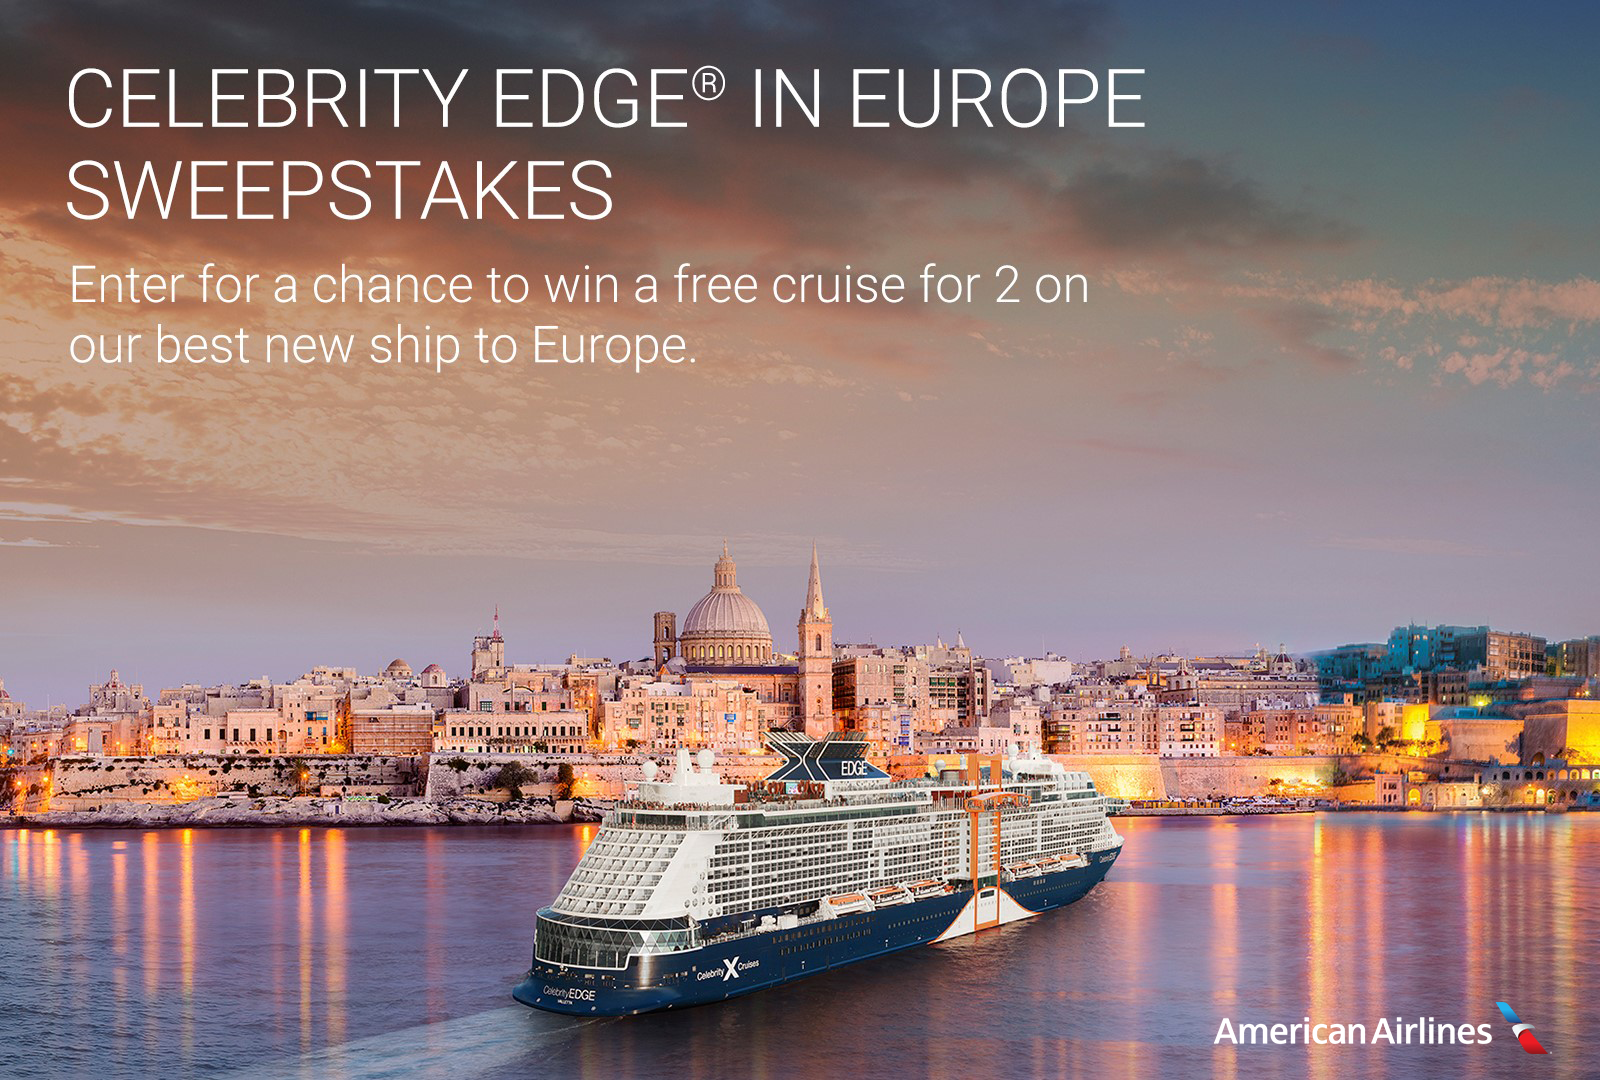 Celebrity Edge In Europe Sweepstakes April 2019 - Cruise Critic